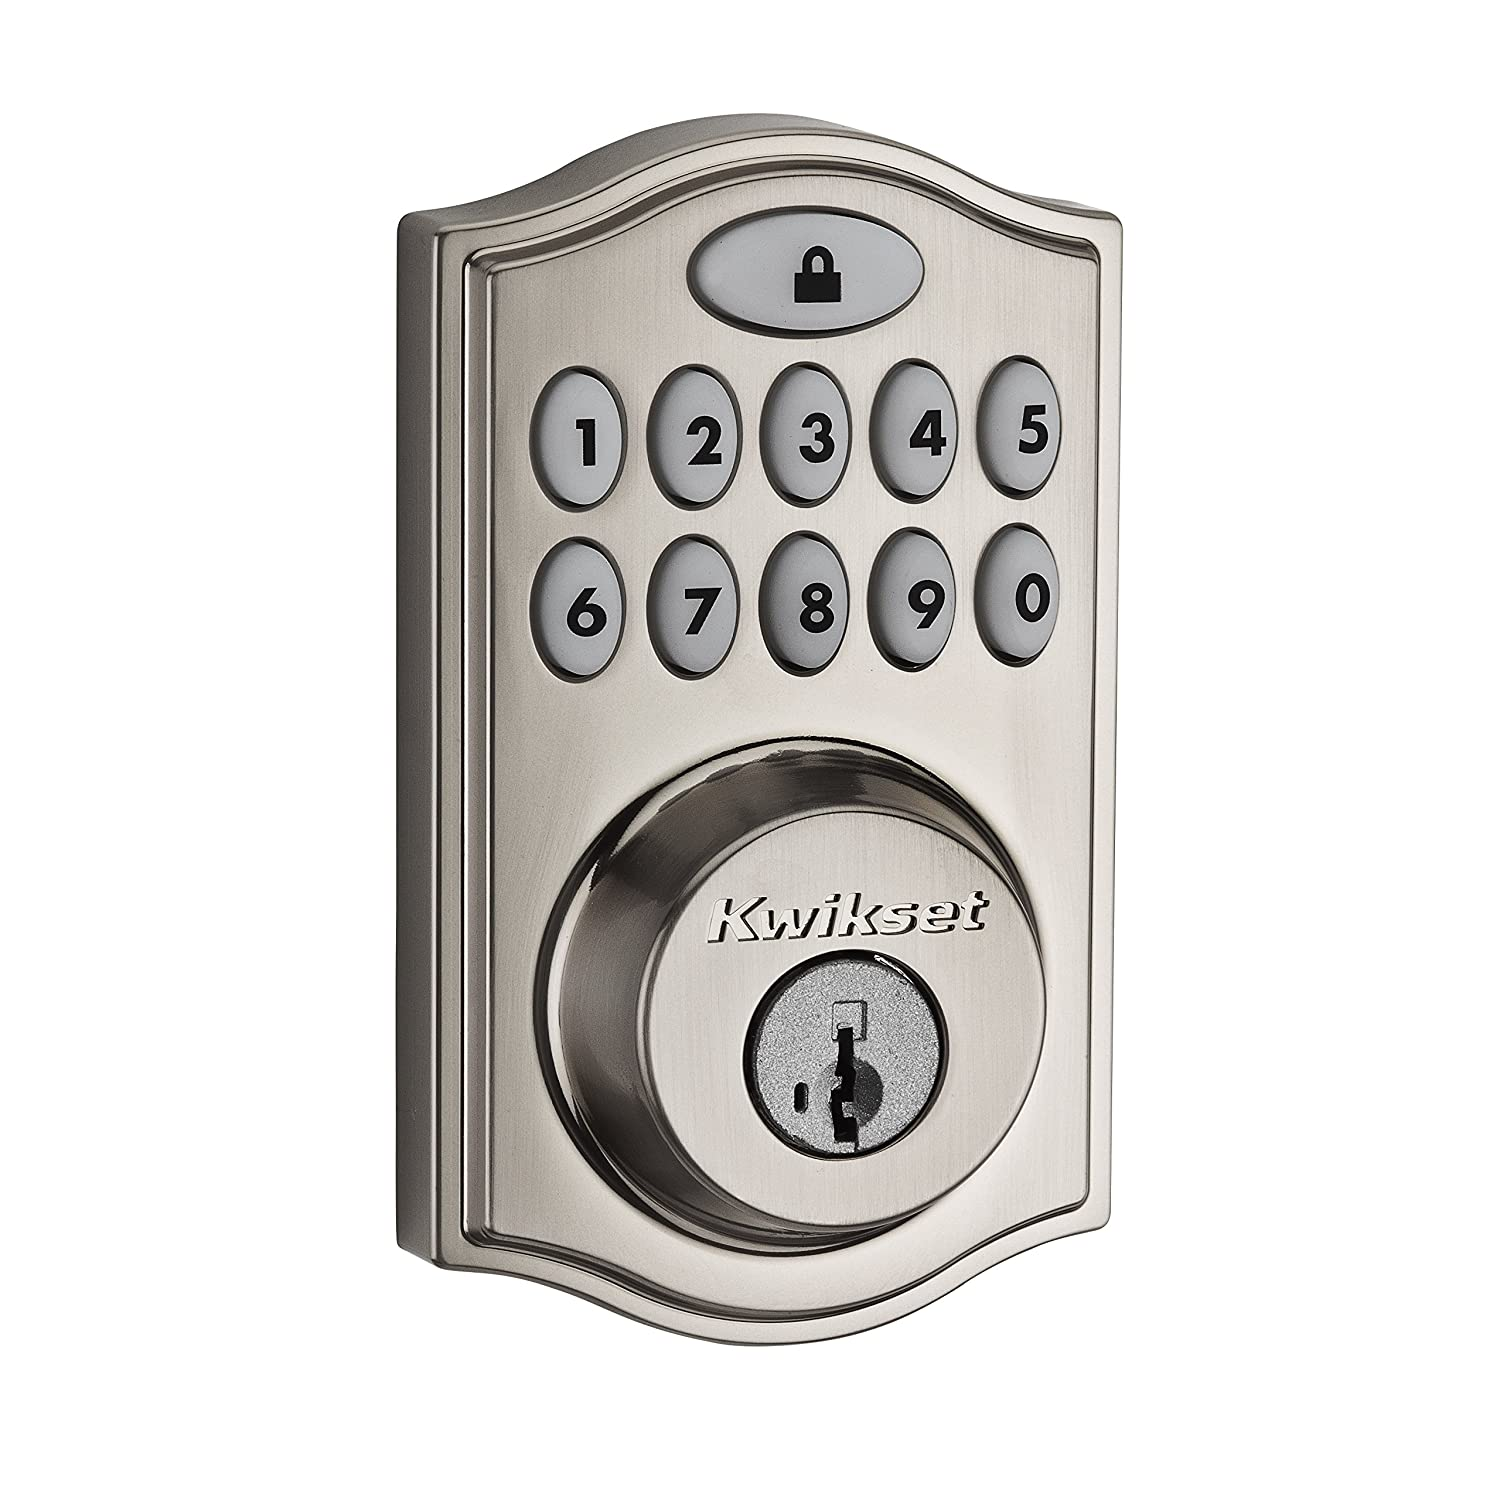 Kwikset 99140-008 Smartcode 914 Zigbee Echo Plus and Xfinity Compatible Touchpad Smart Lock, Works with Alexa, Featuring Smartkey in Satin Nickel